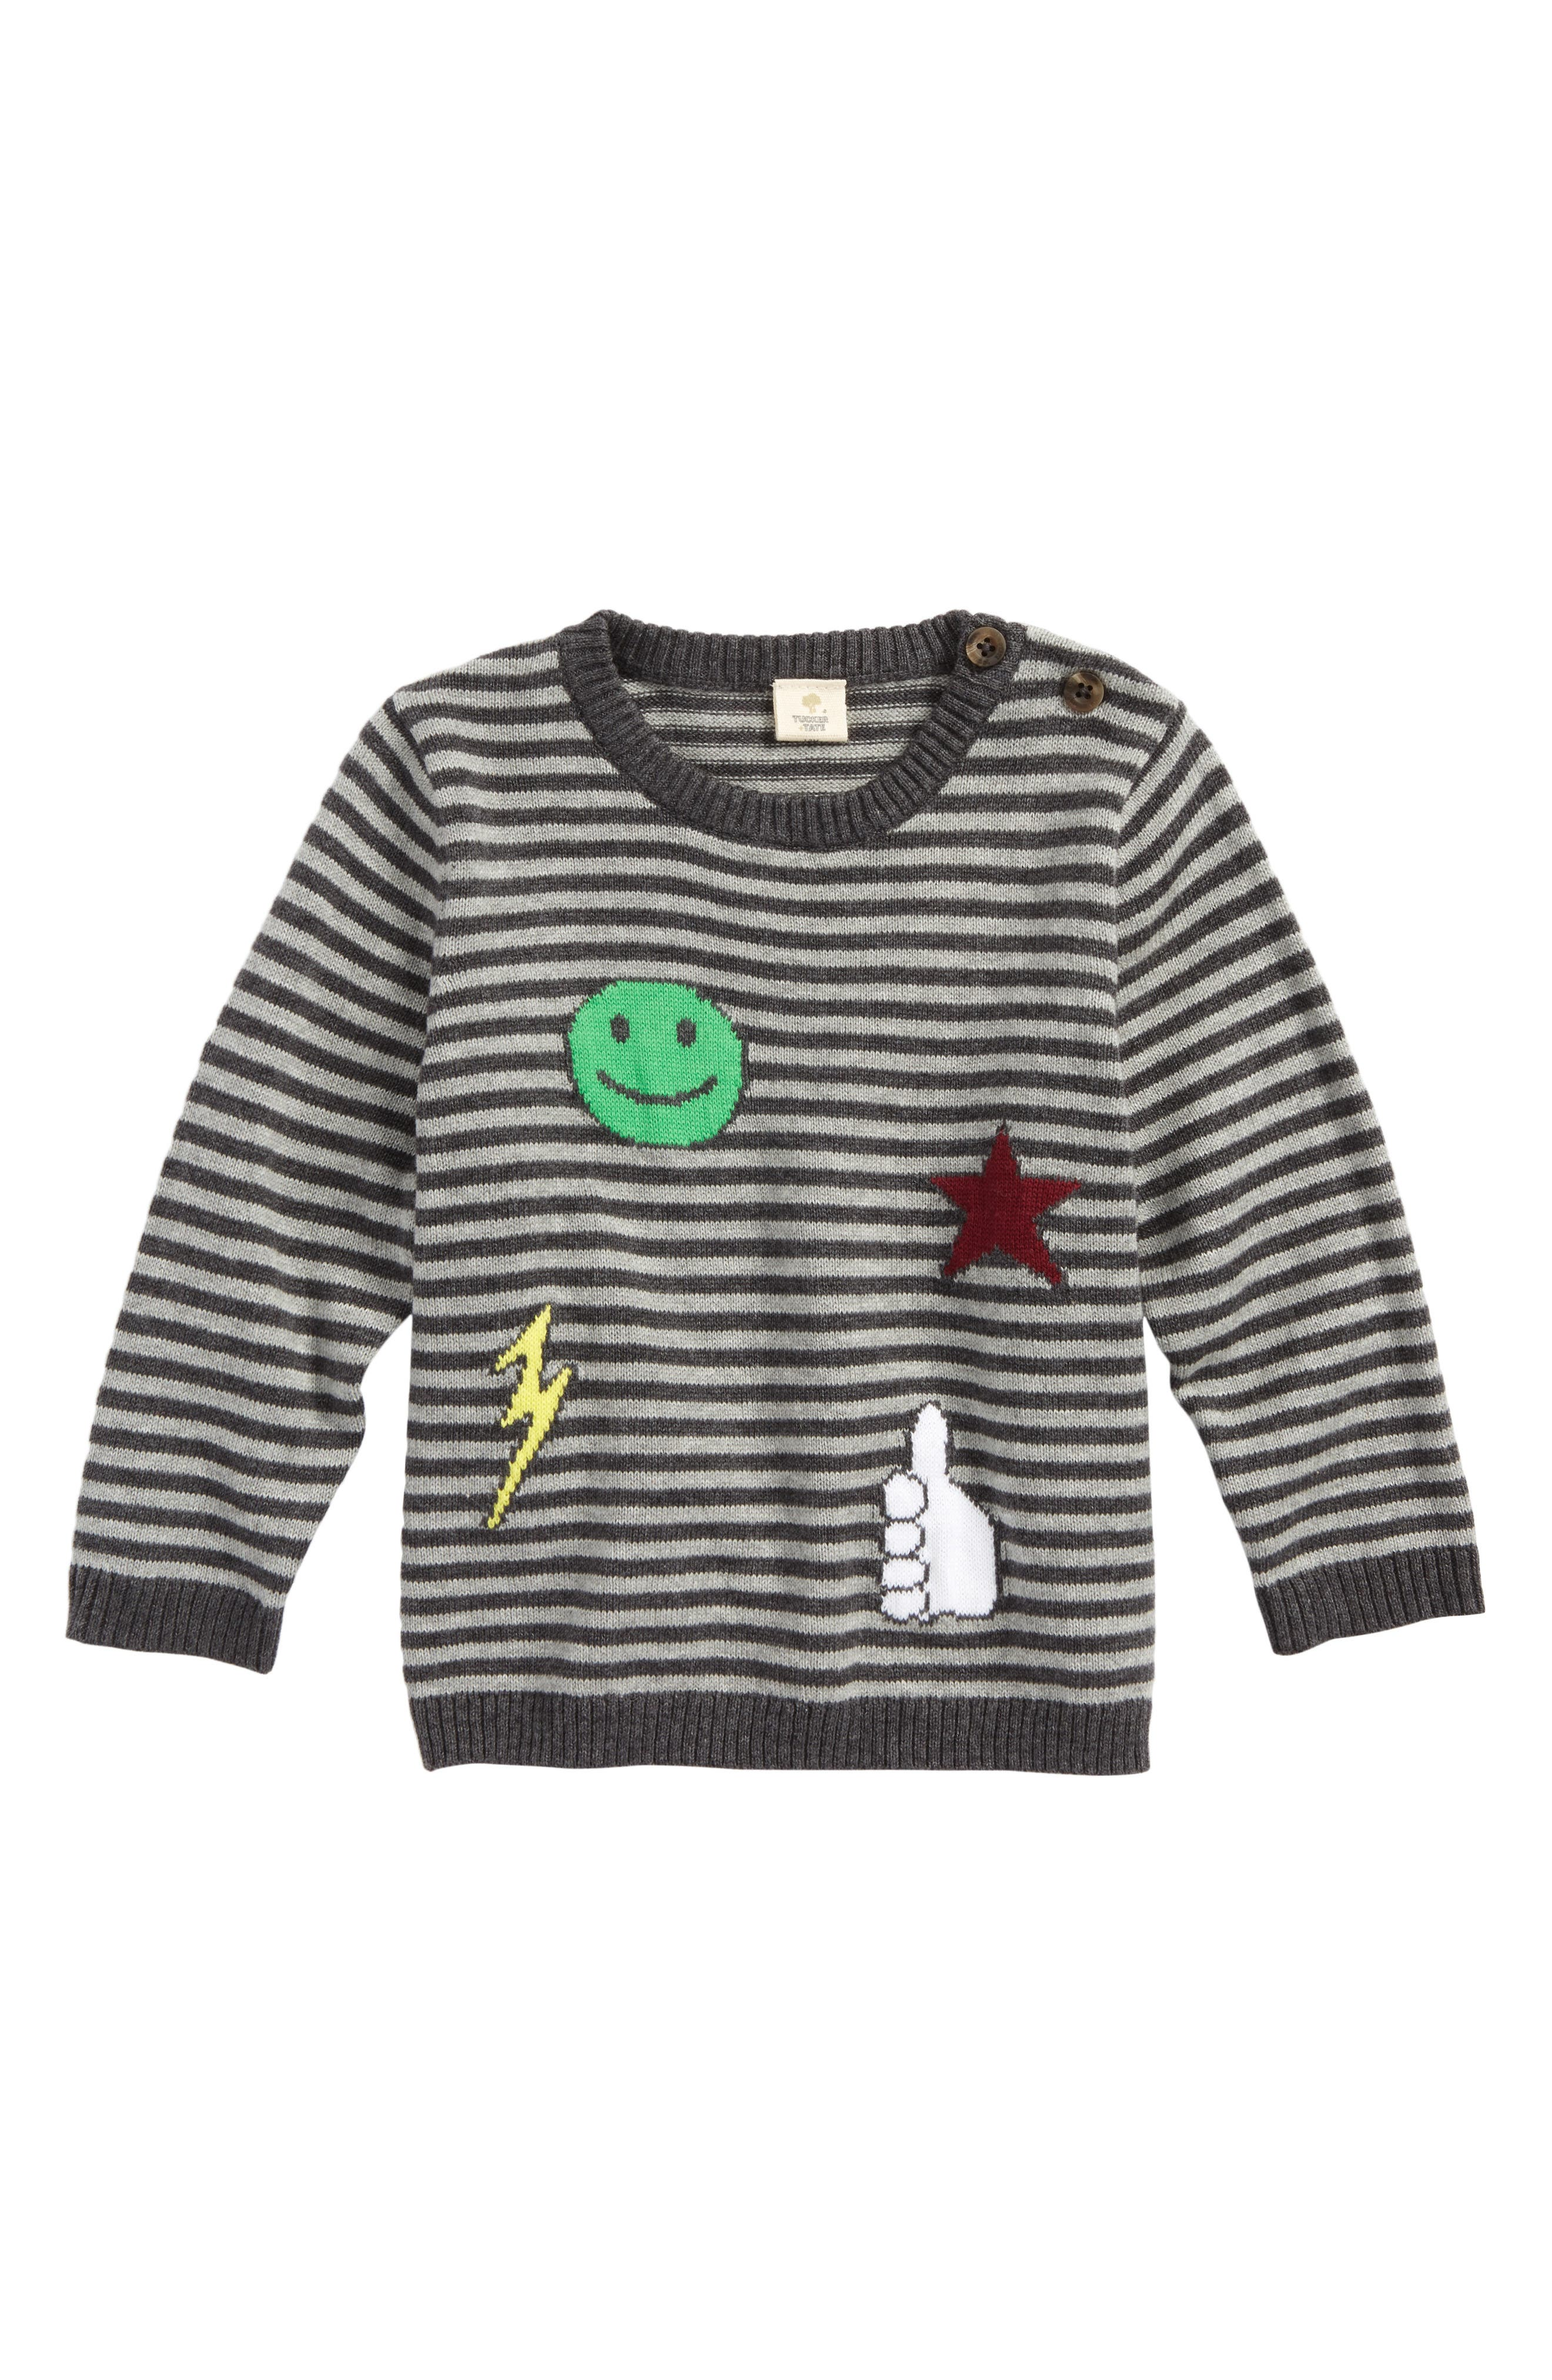 Main Image - Tucker + Tate Intarsia Patches Sweater (Baby Boys)